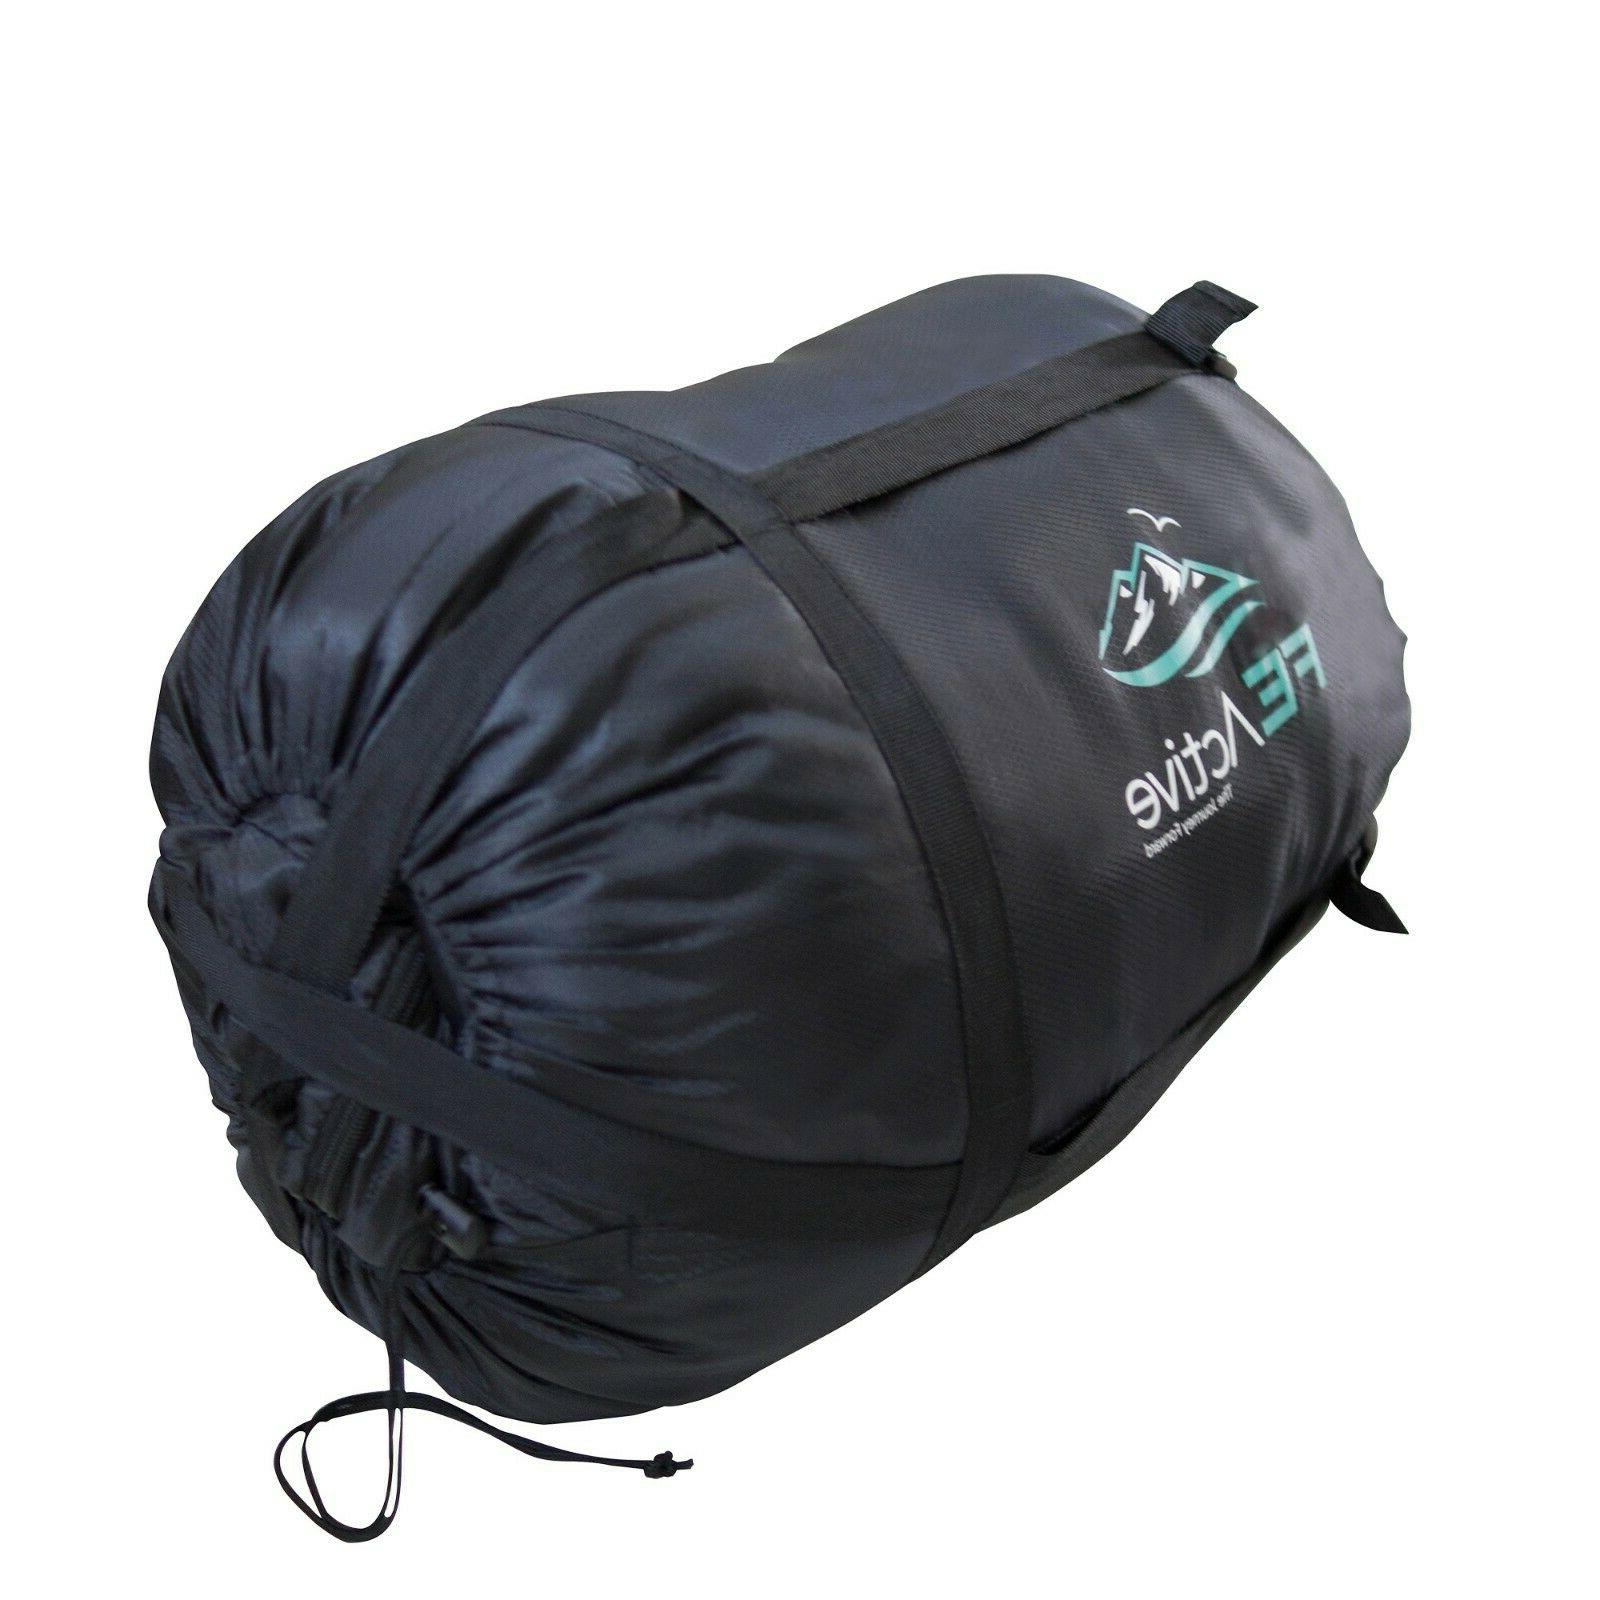 FE Bag Hooded, Extra Long & Resistant